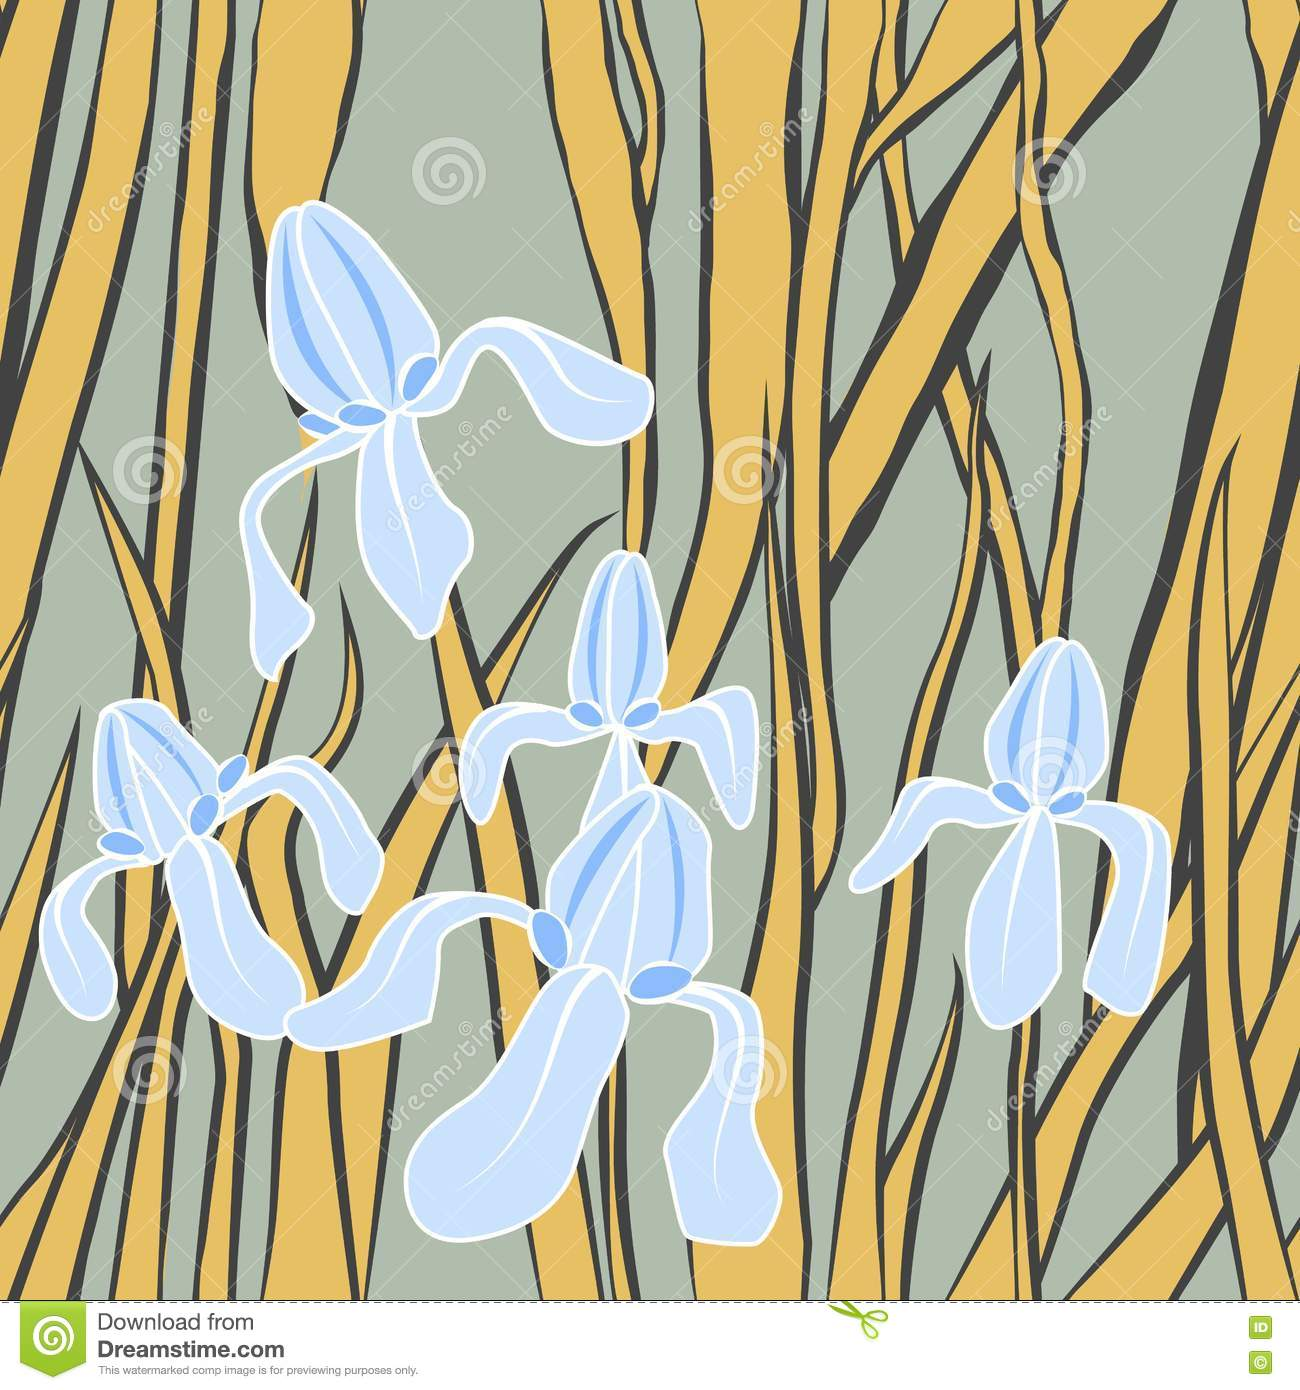 Vector Graphic Stylized Image Of Iris Flower Illustration With